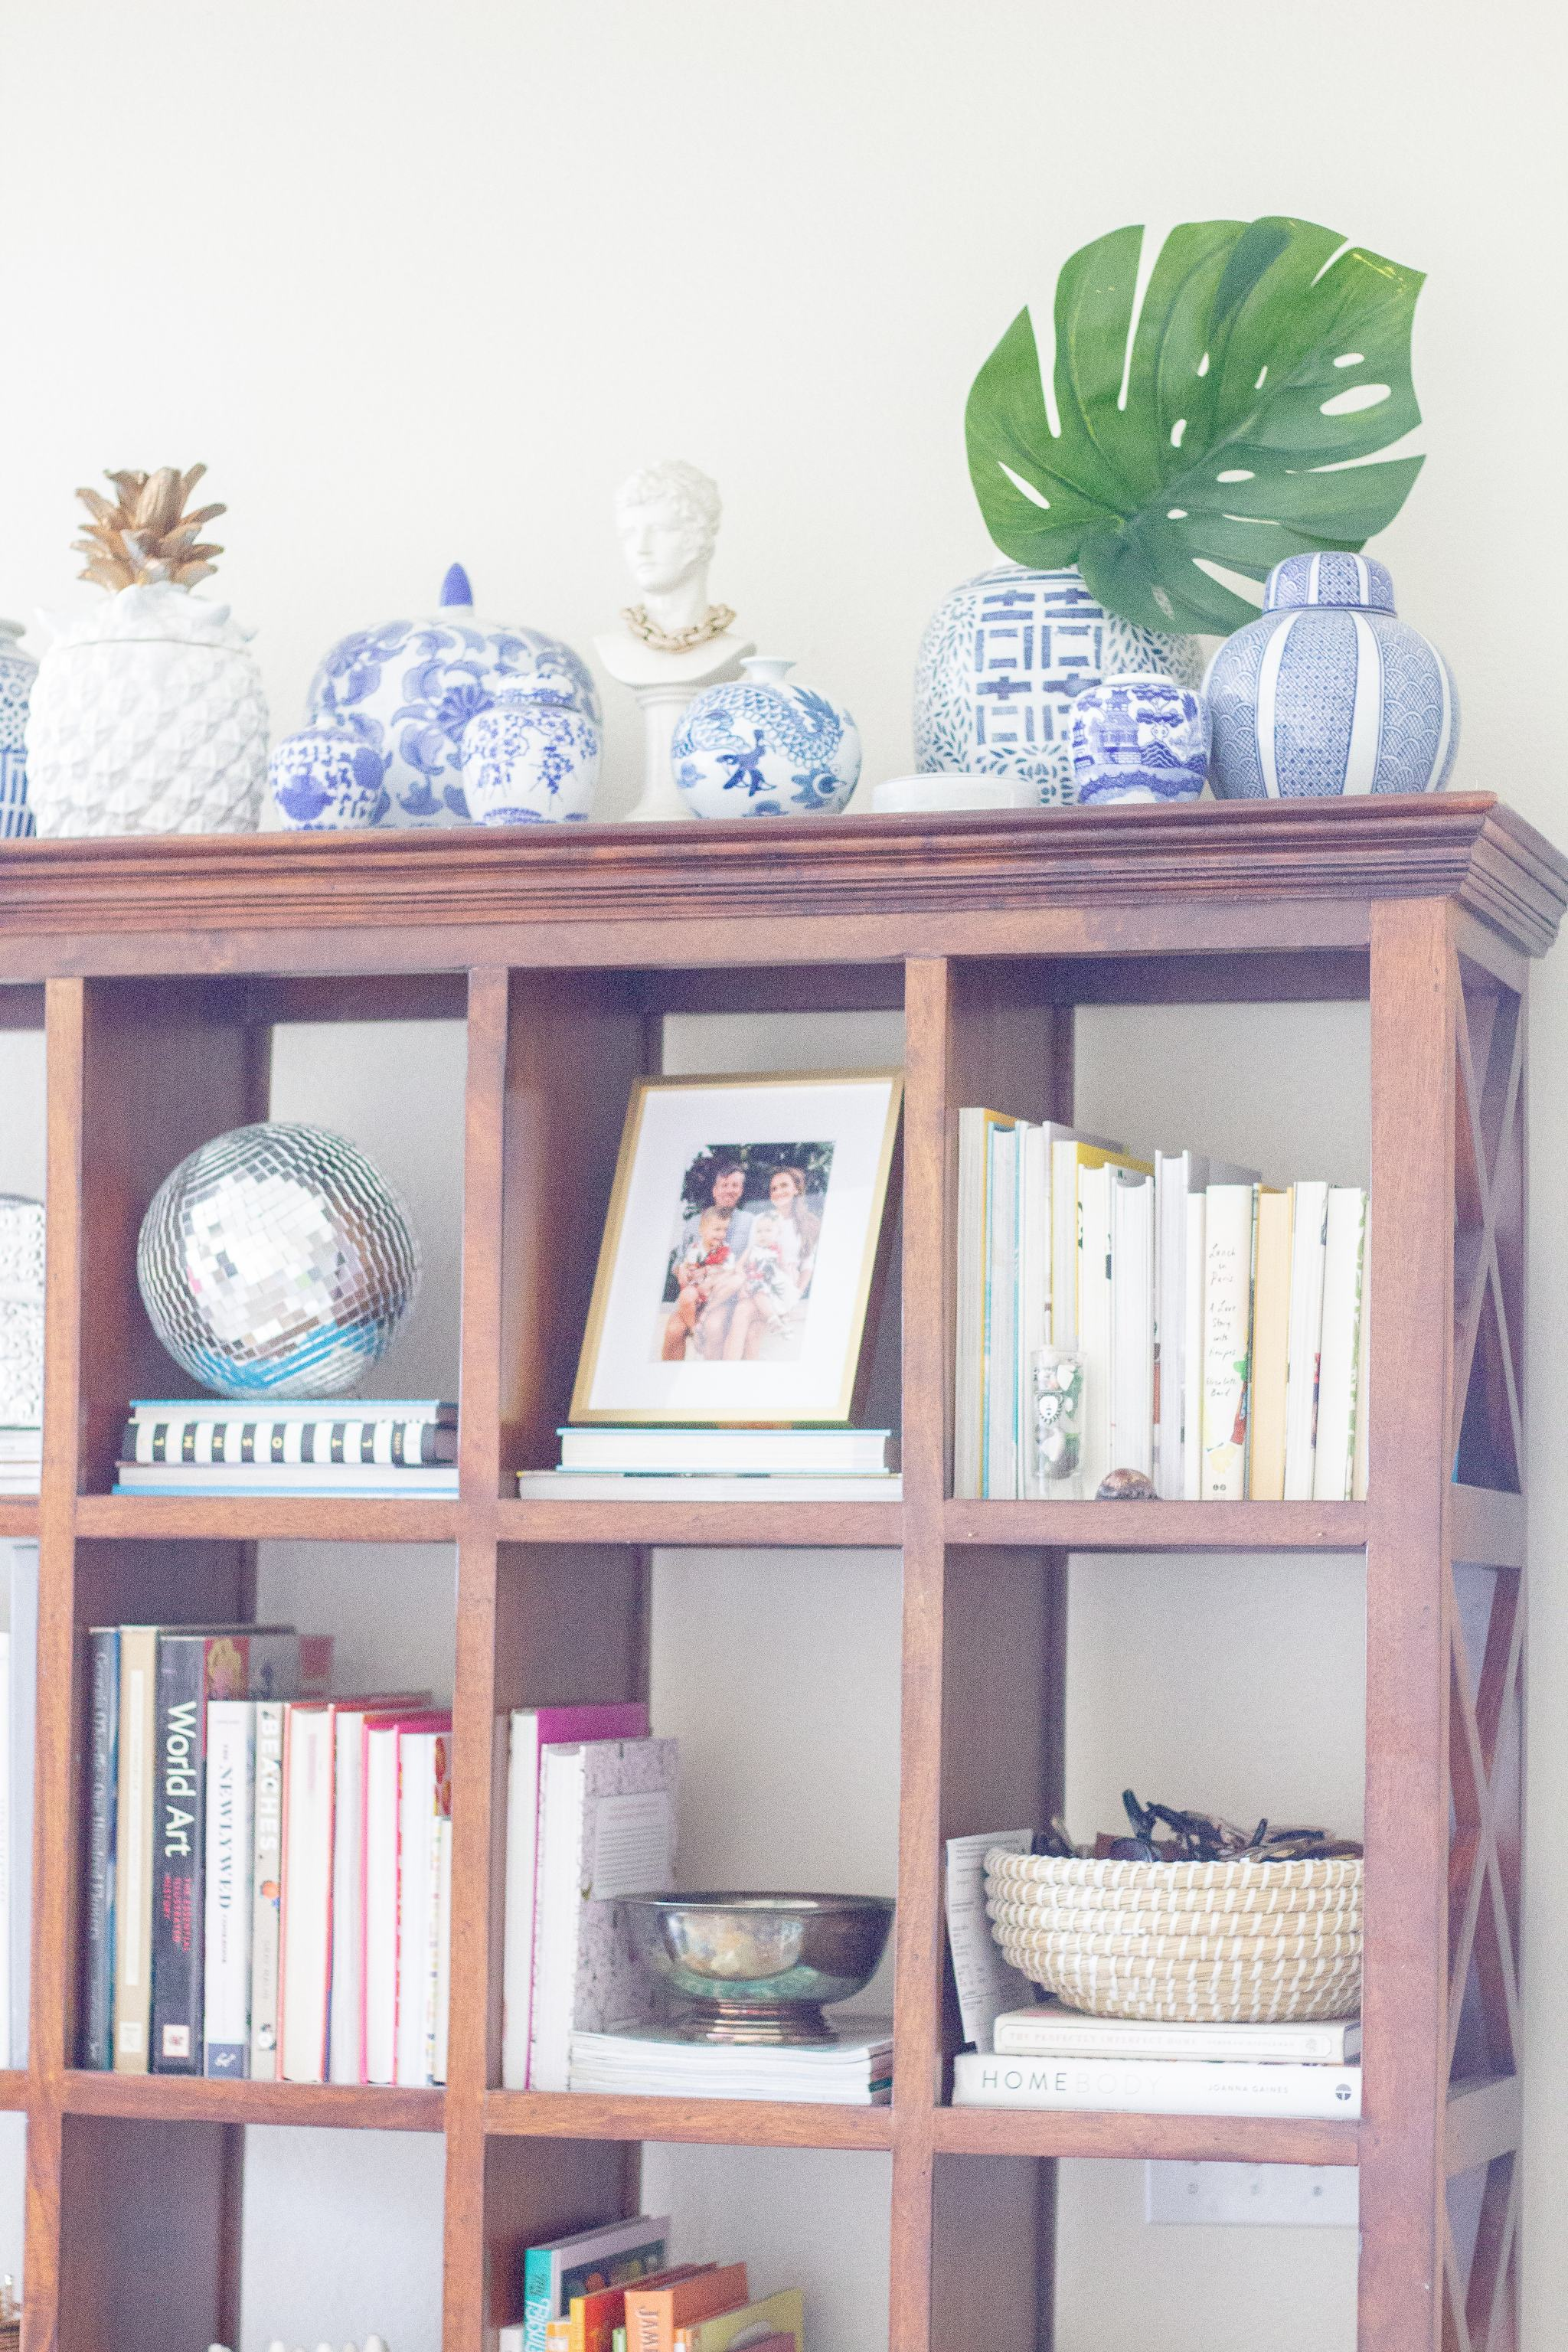 tall bookcase - blue and white ginger jars - how to decorate a bookcase - bookshelf